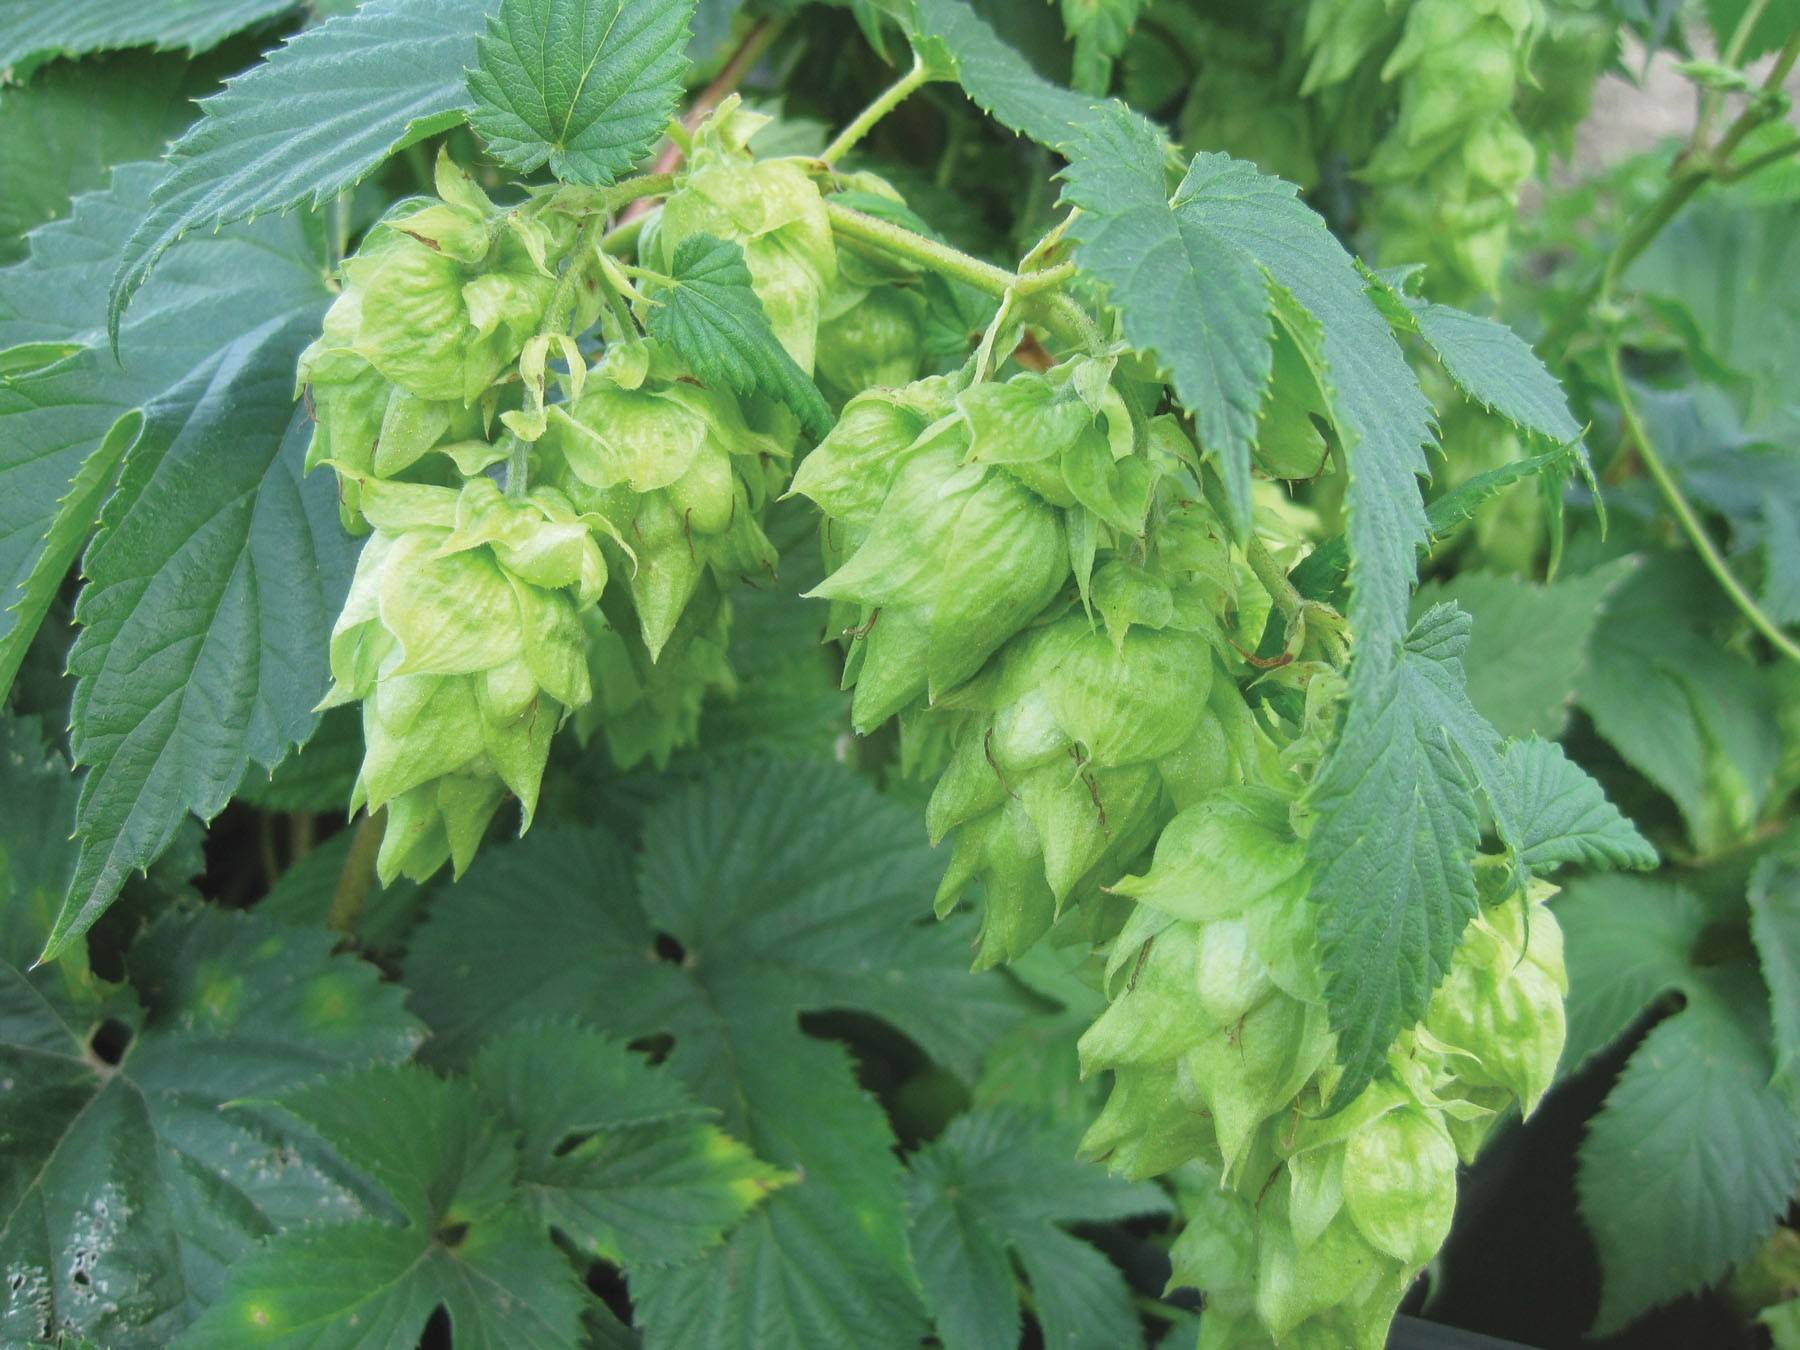 After hop cones ripen and are harvested and dried, store them in airtight plastic bags and freeze until brewing time.